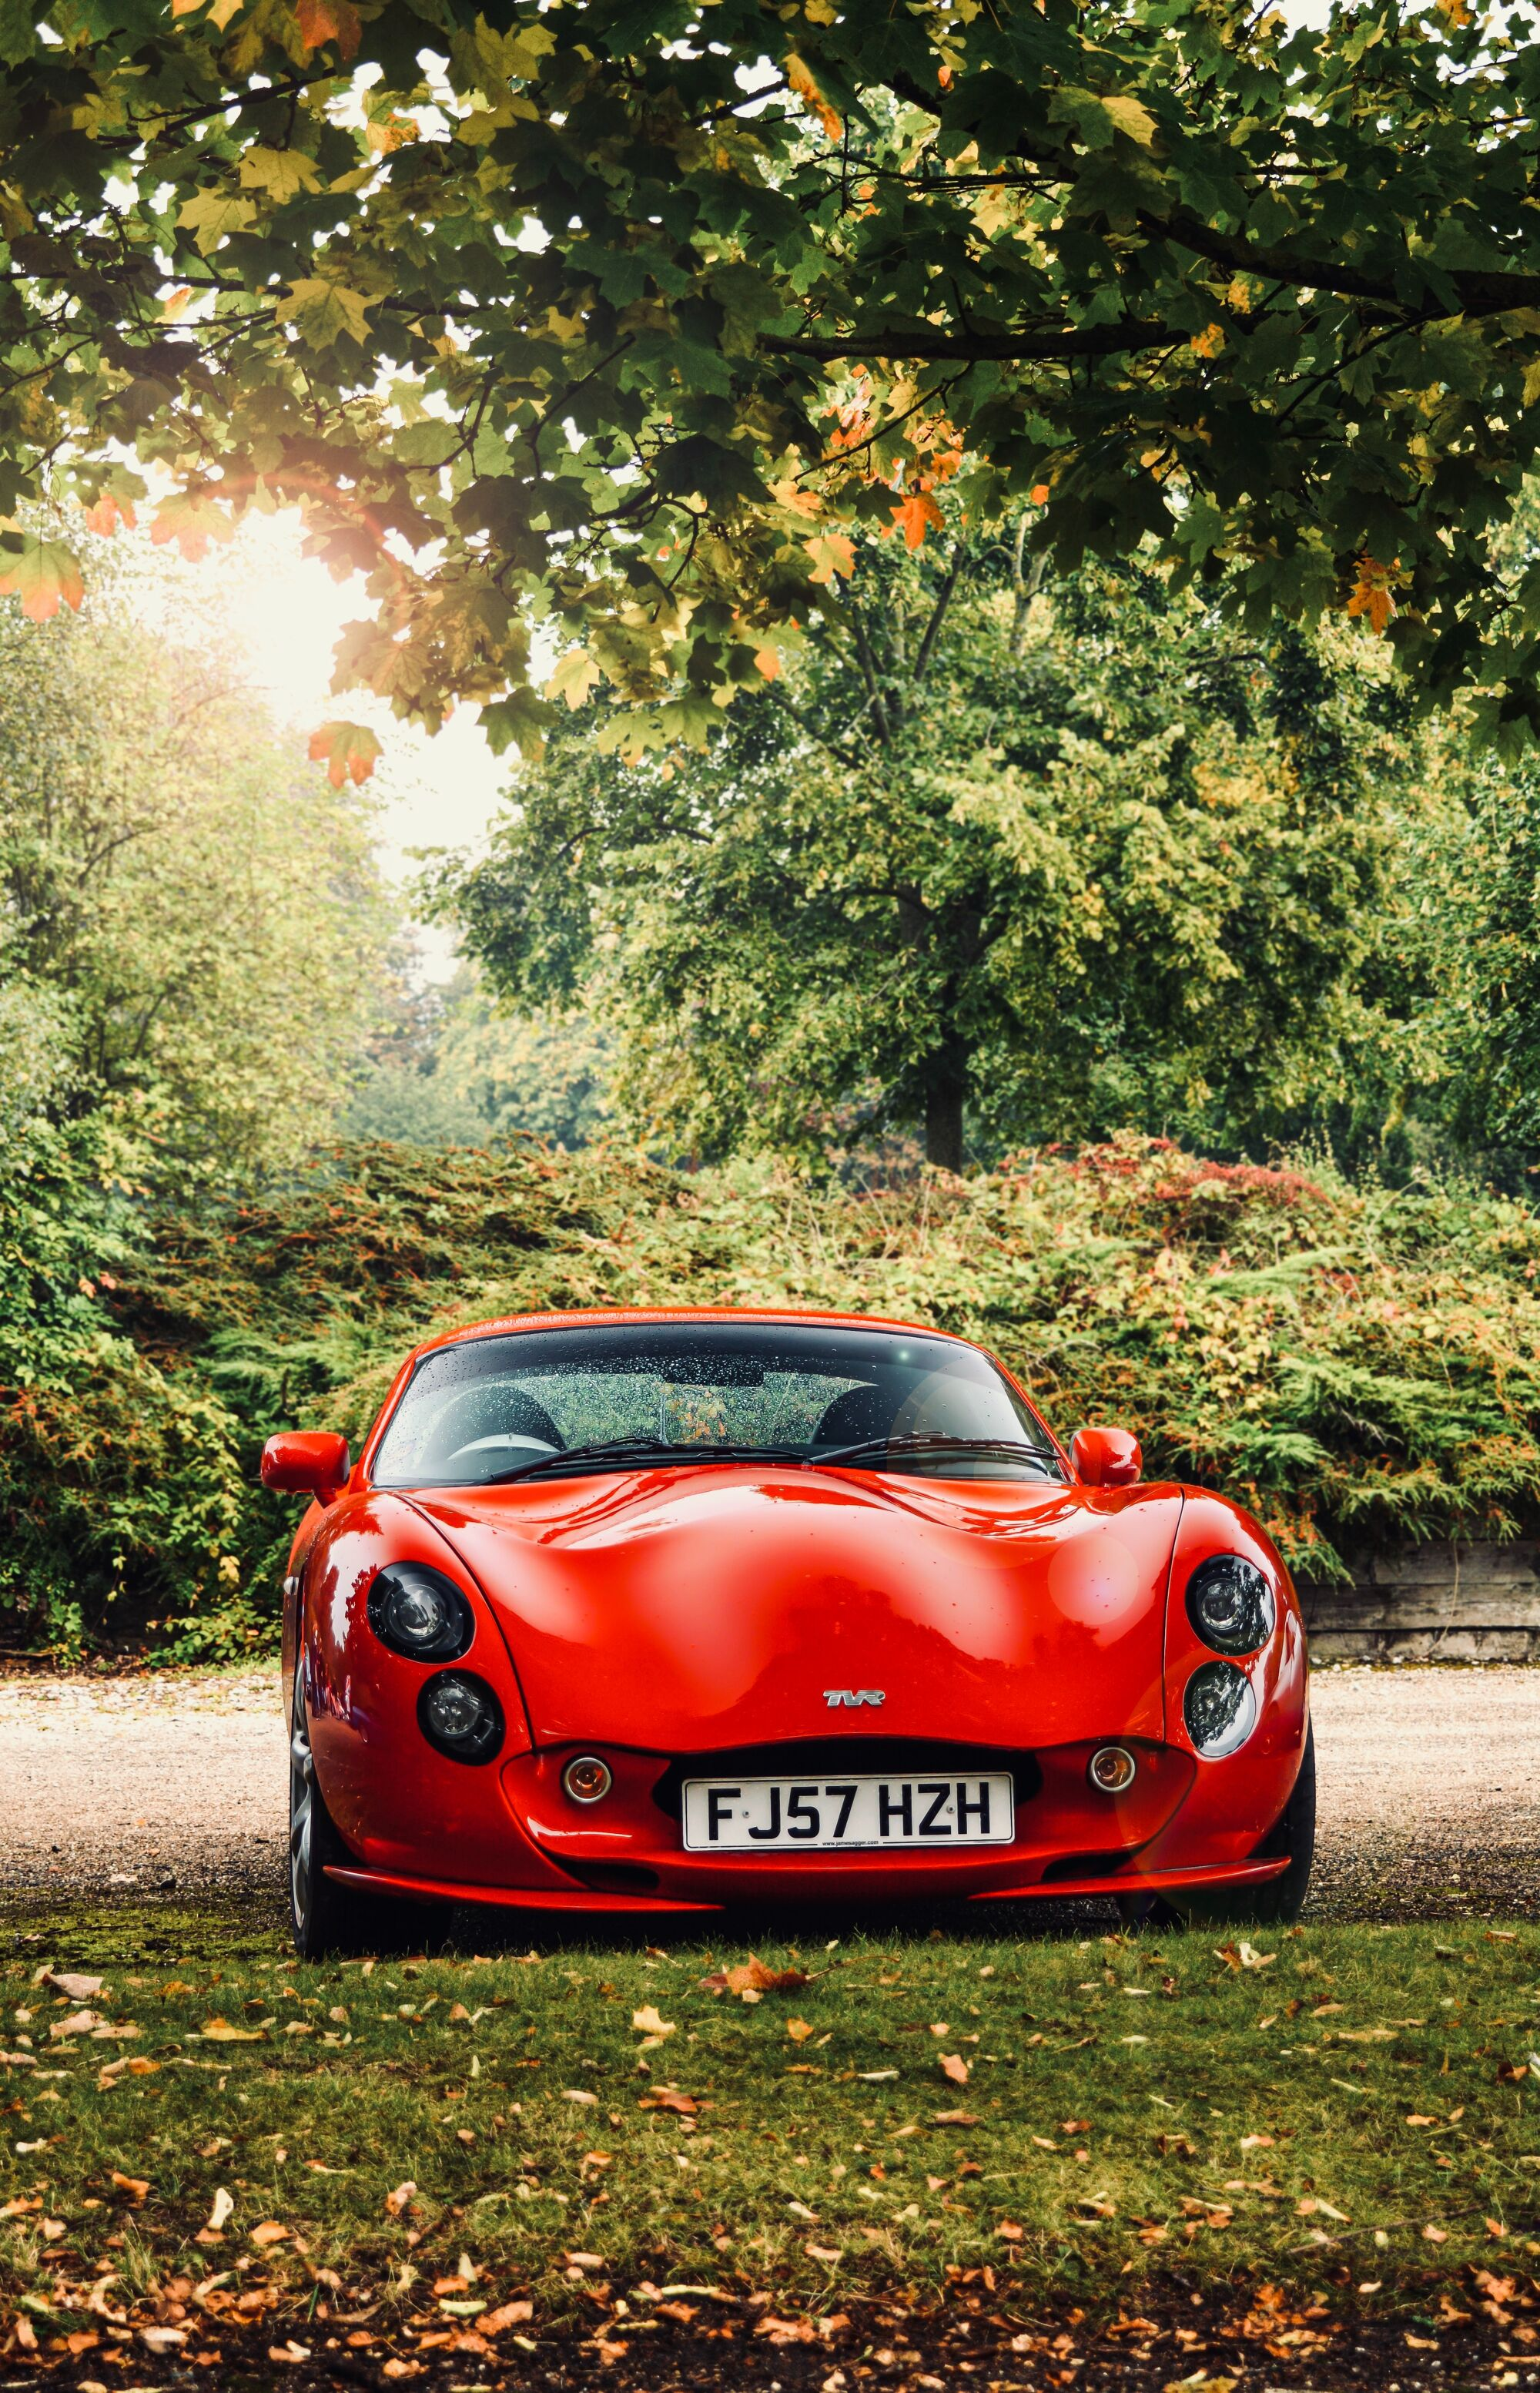 Tvr cover